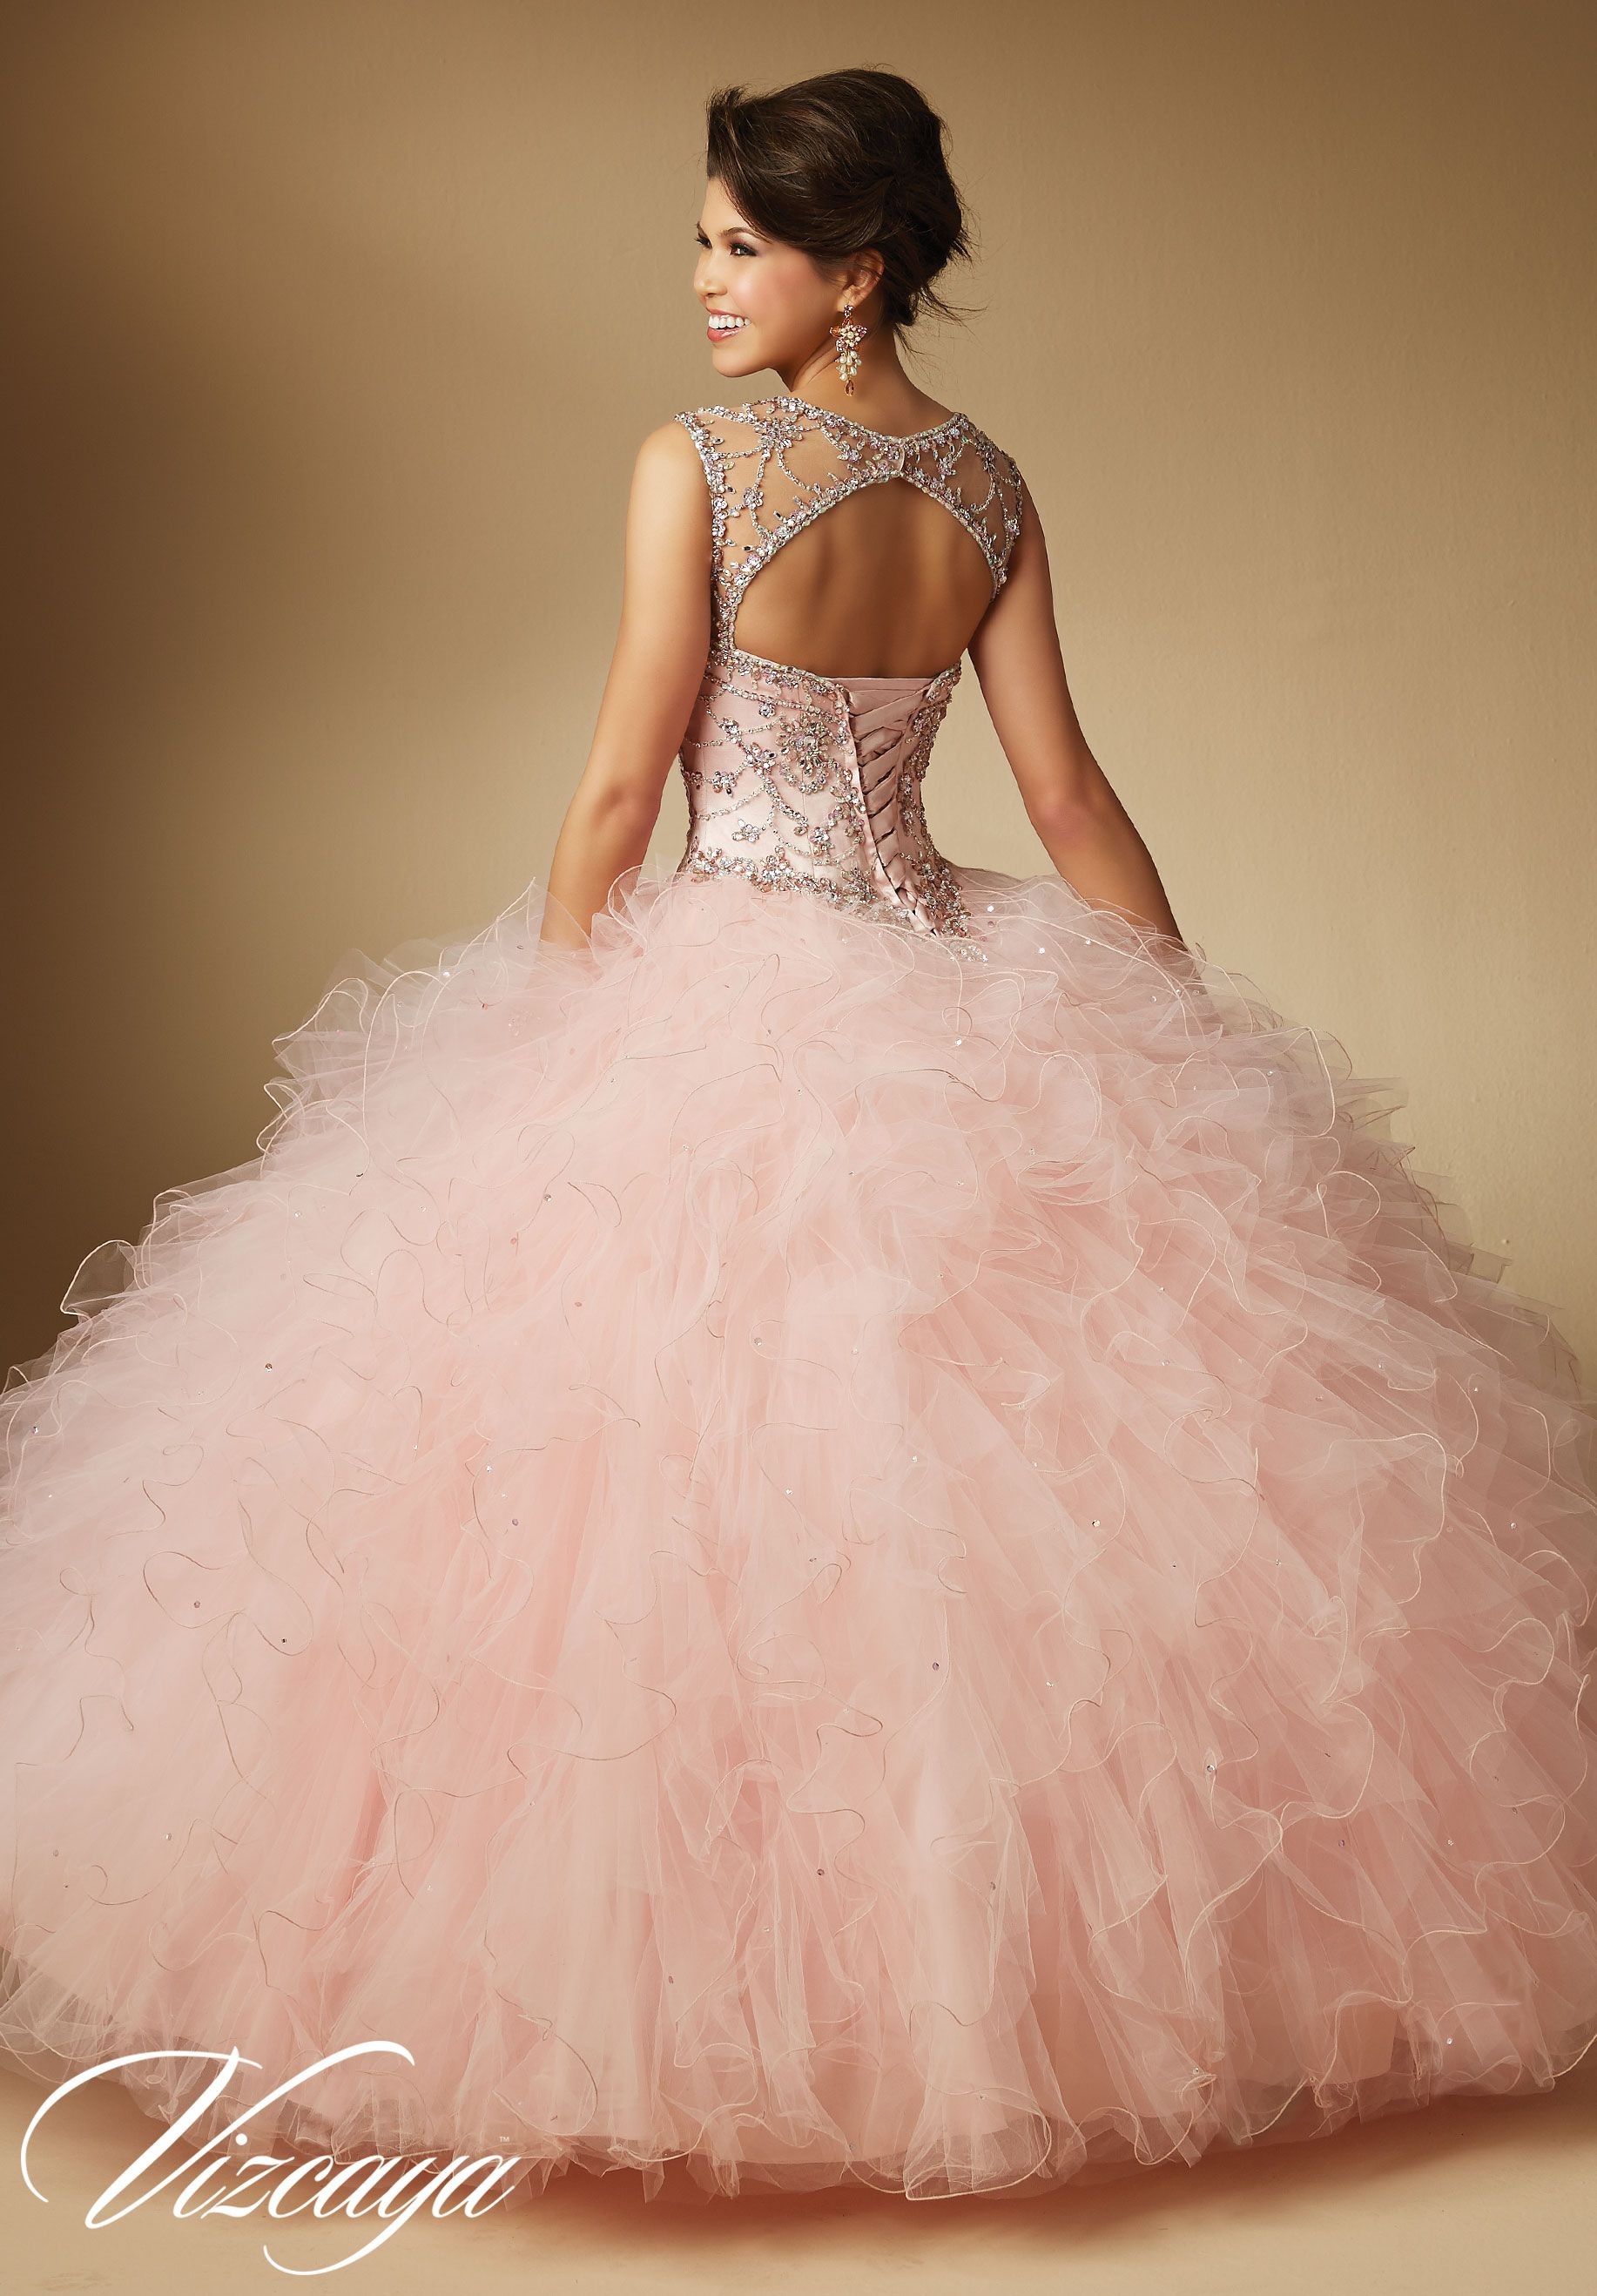 89041 Quinceanera Gowns Jeweled Beading on Ruffled Tulle | xv ...